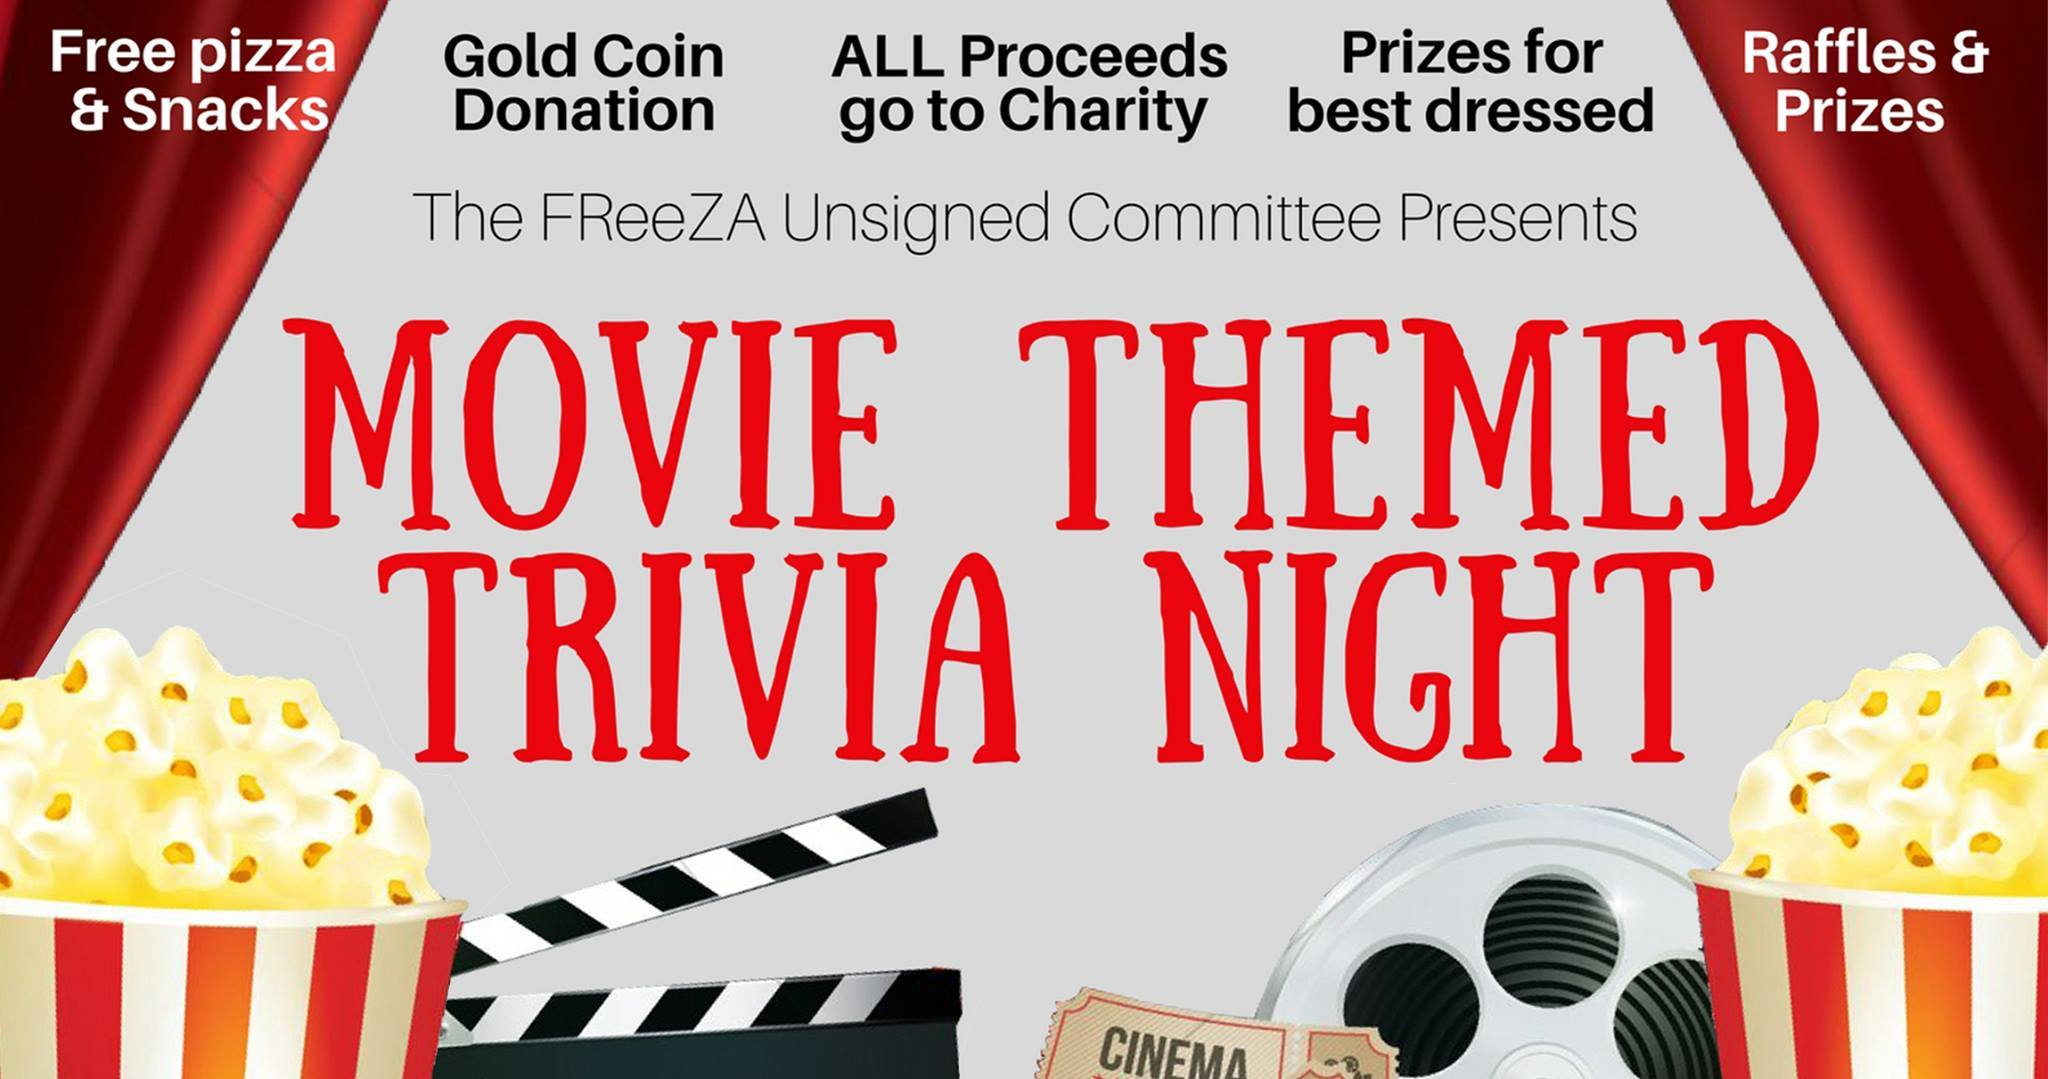 movie themed trivia night melbourne